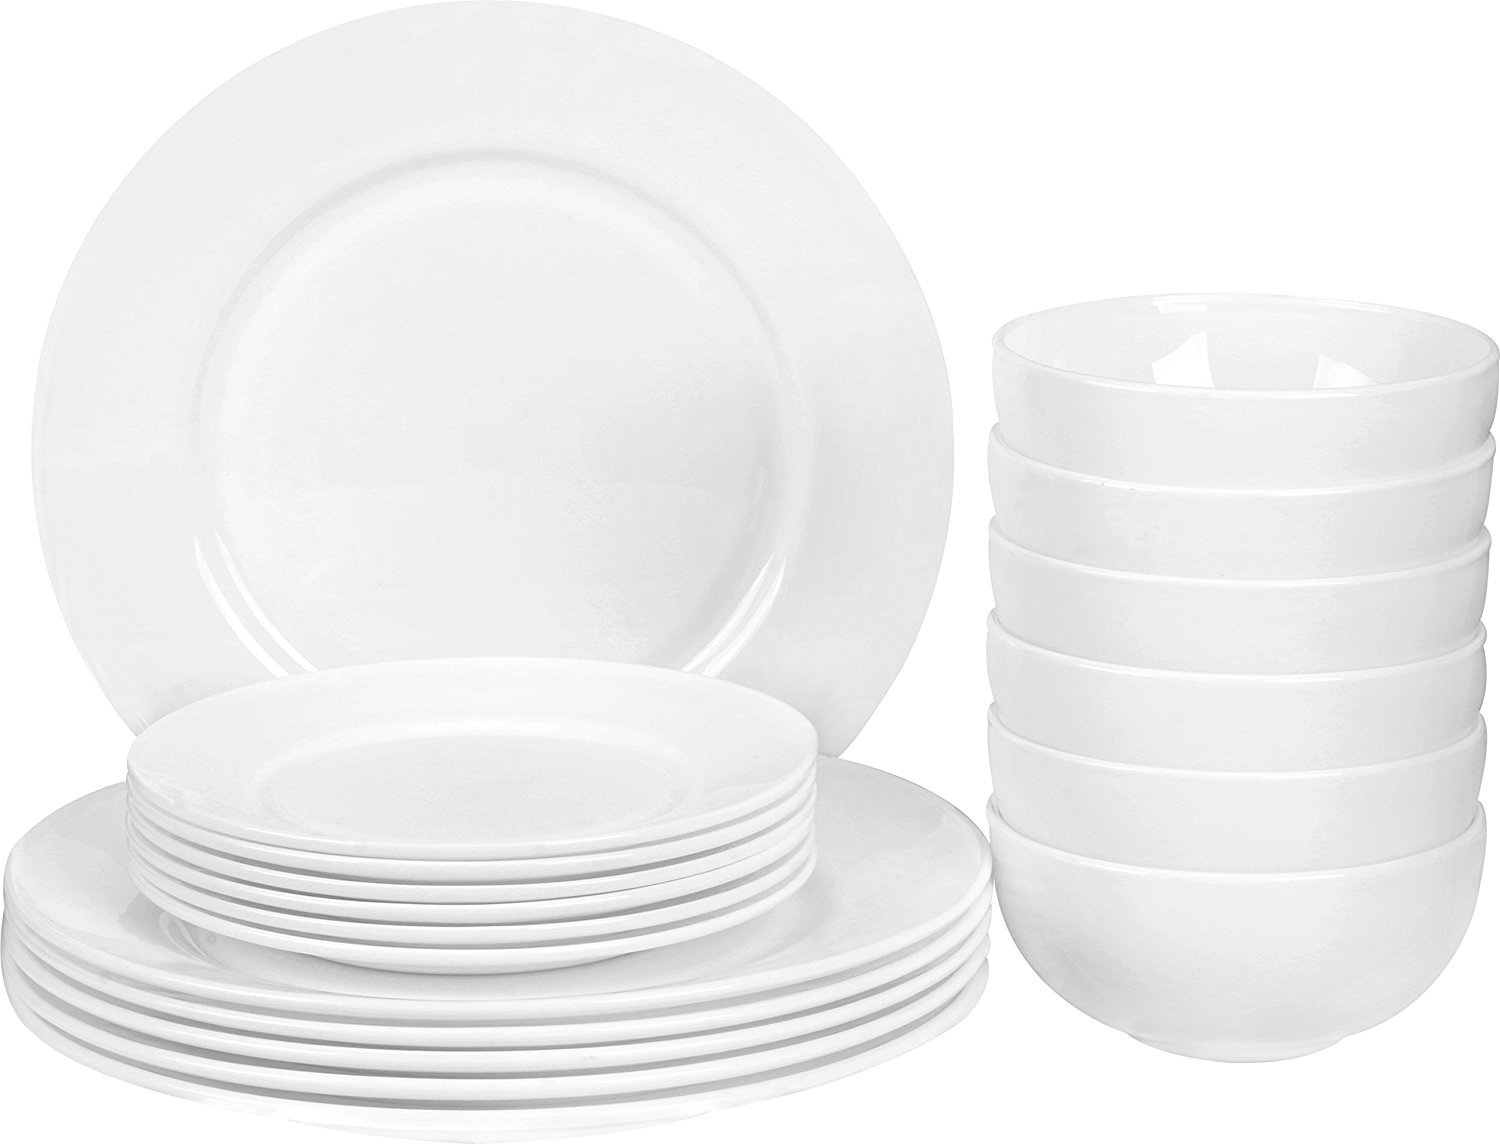 Utopia Kitchen 18 Pieces Flat Edge Dinner Set - Dishwasher Safe Opal Glassware - Microwave/Oven Friendly